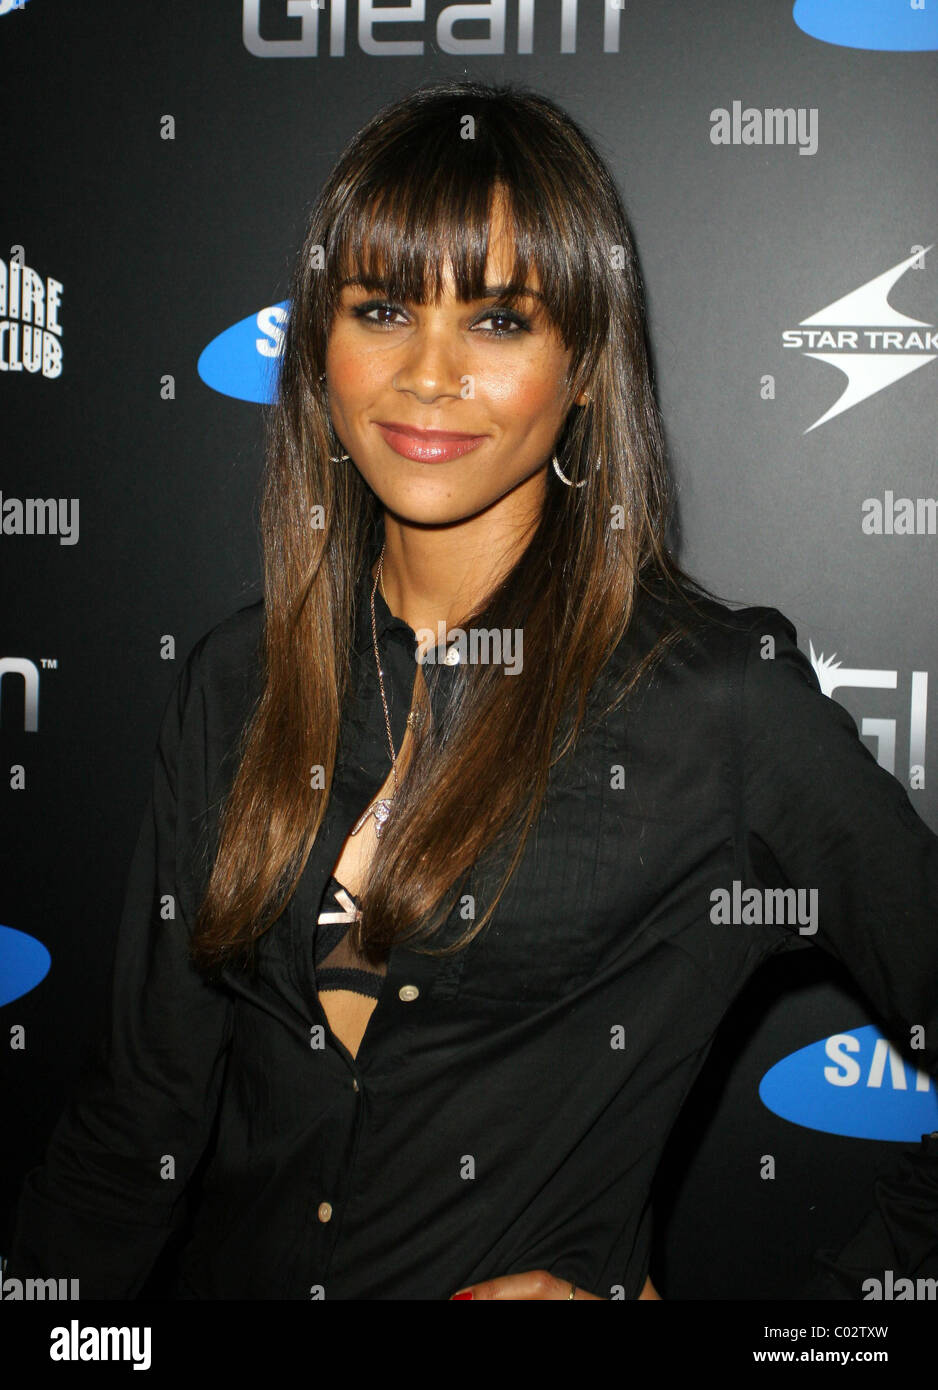 Kidada Jones Kidada Jones new photo